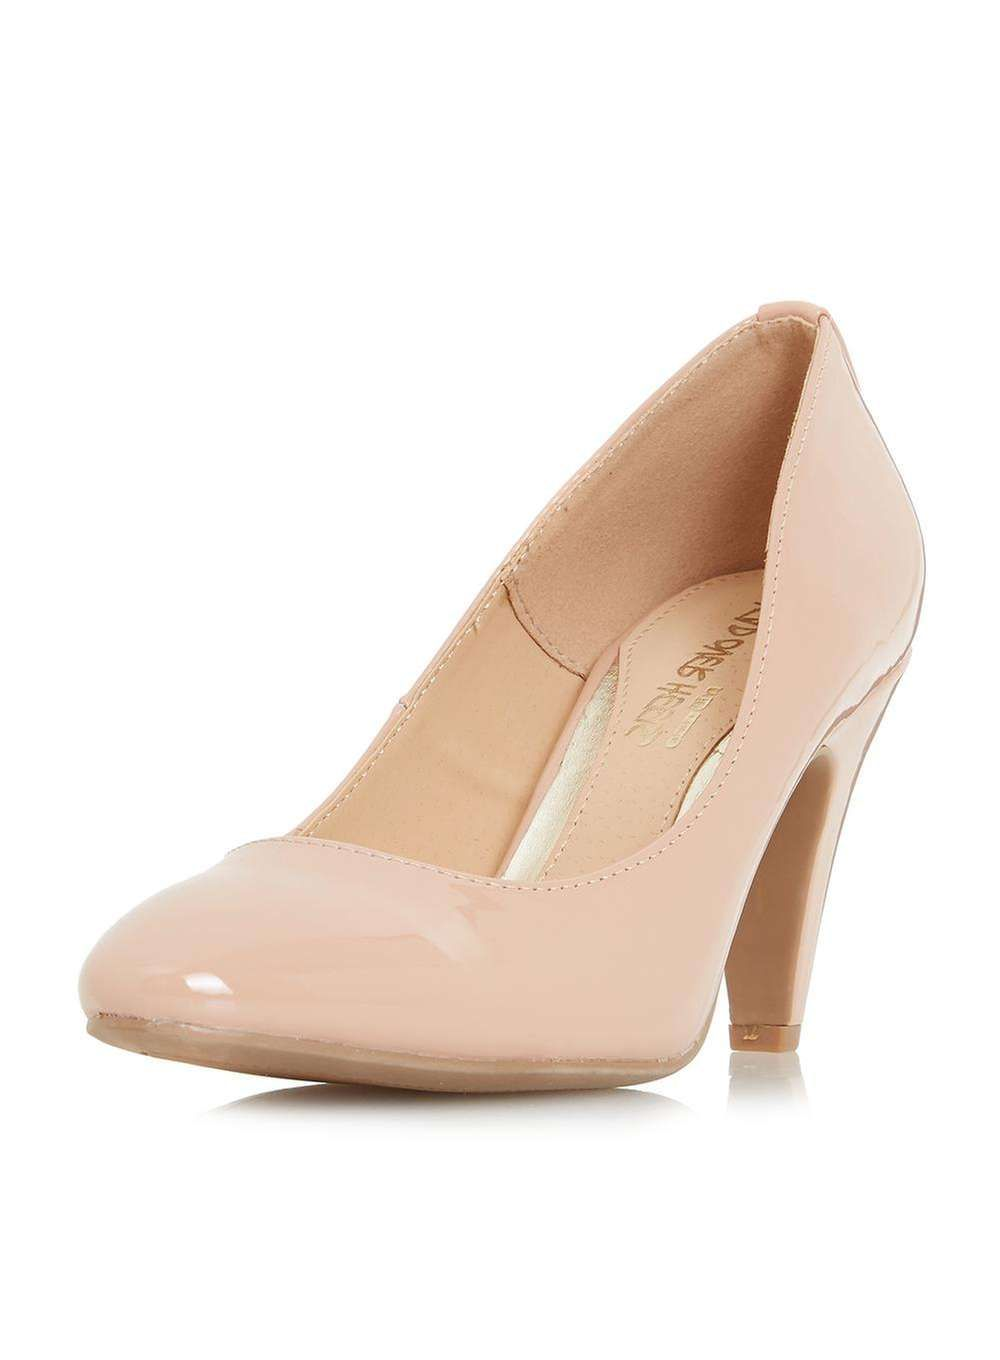 5b7c3bcbe3f5 Head Over Heels By Dune Nude 'Ava' Mid Heel Court Shoes | Products ...